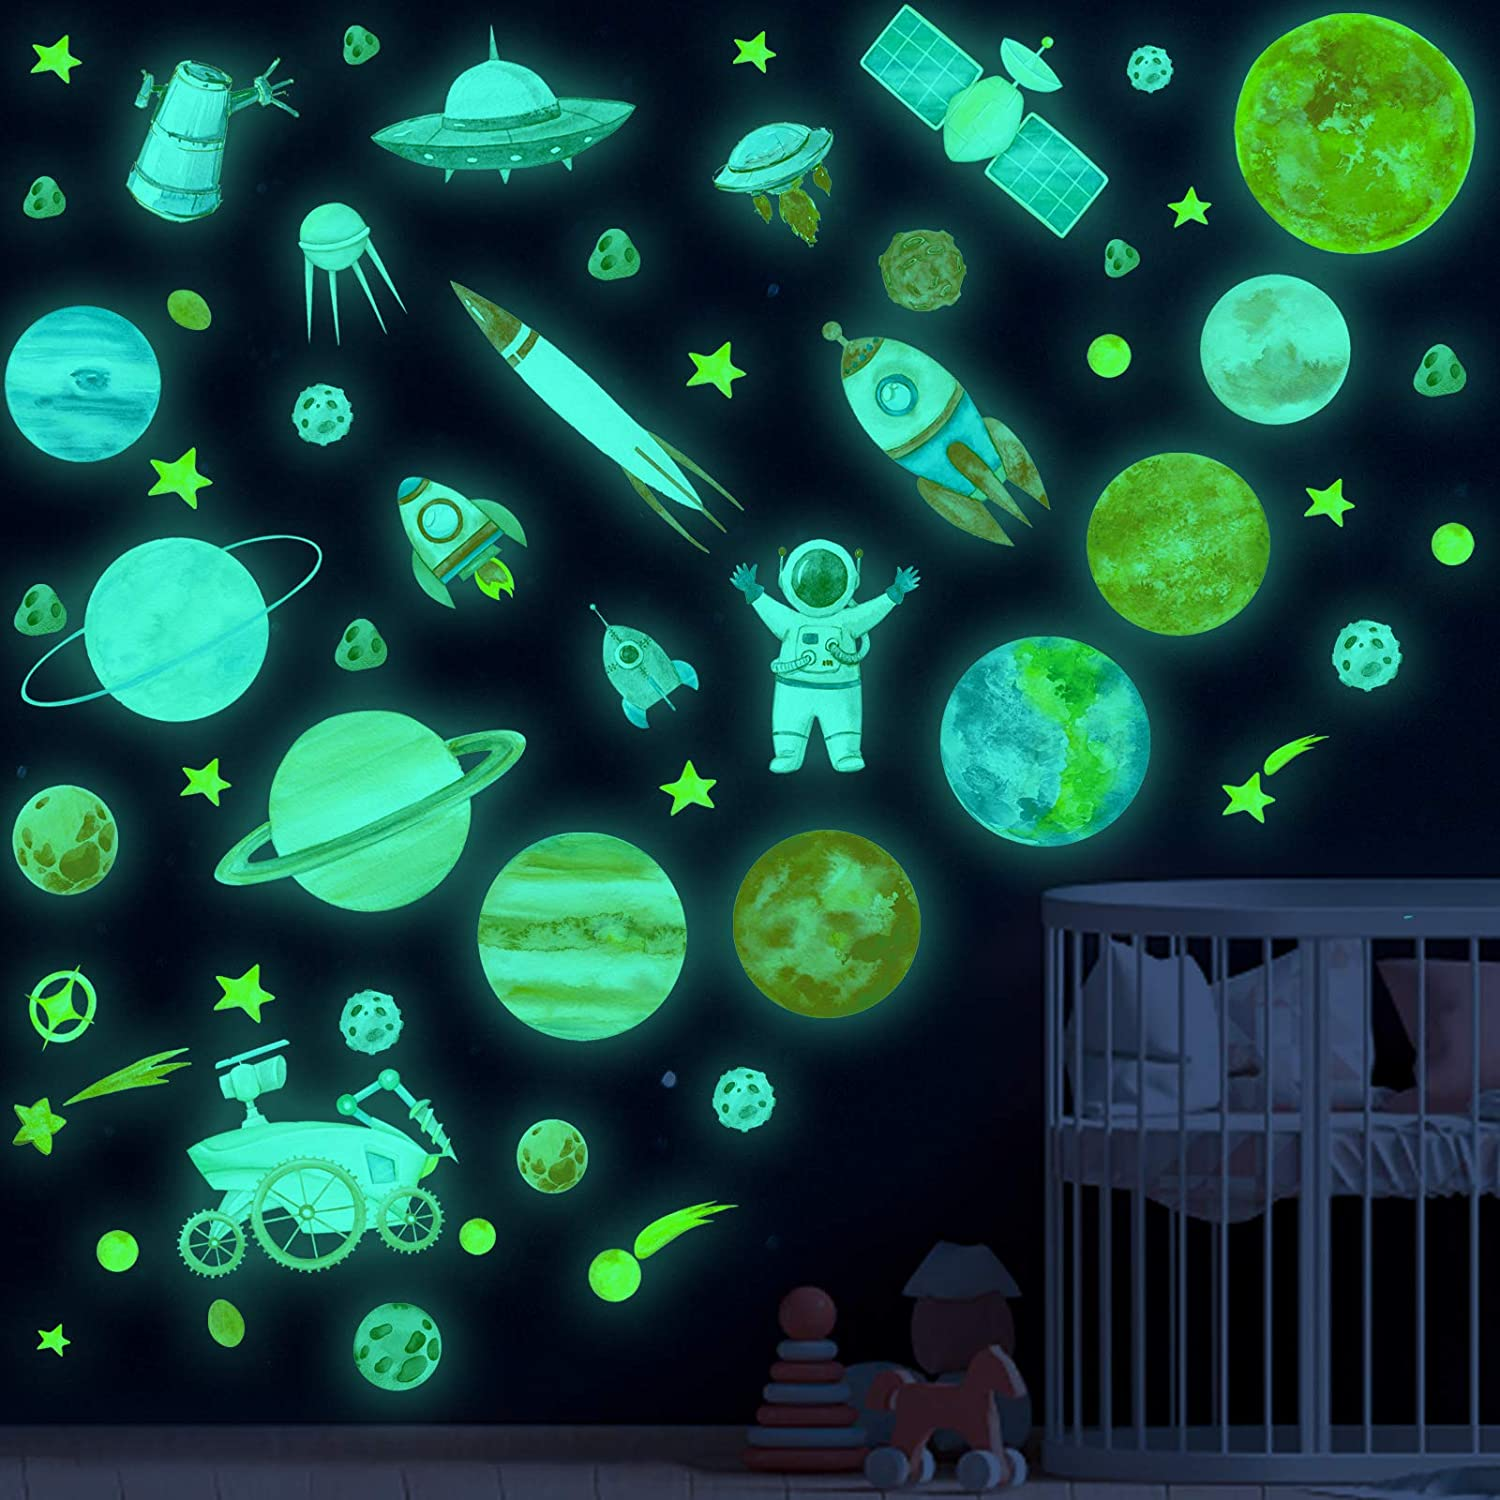 Glow in The Dark Stars and Planet Wall Stickers,Galaxy Astronaut Rocket Spacecraft Alien Decoration,Planet Wall Decals,Bright Solar System Wall Stickers for Kids, lanets Spaceship Stars Decal Decor